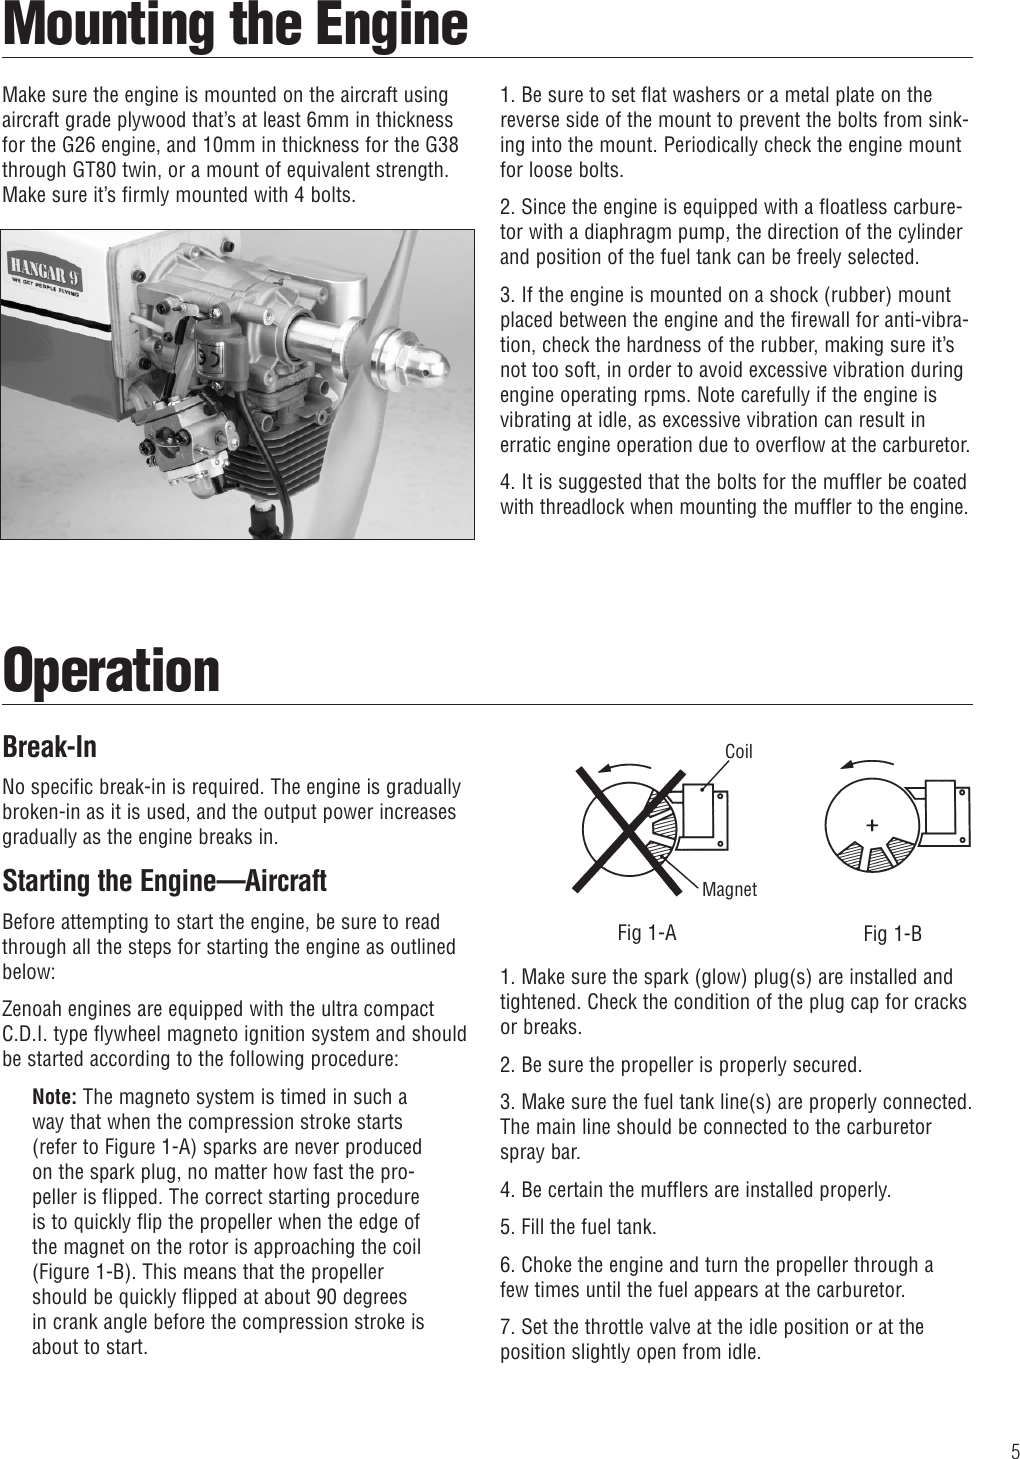 Zenoah G26 Air Users Manual 6135_Zenoah Engine